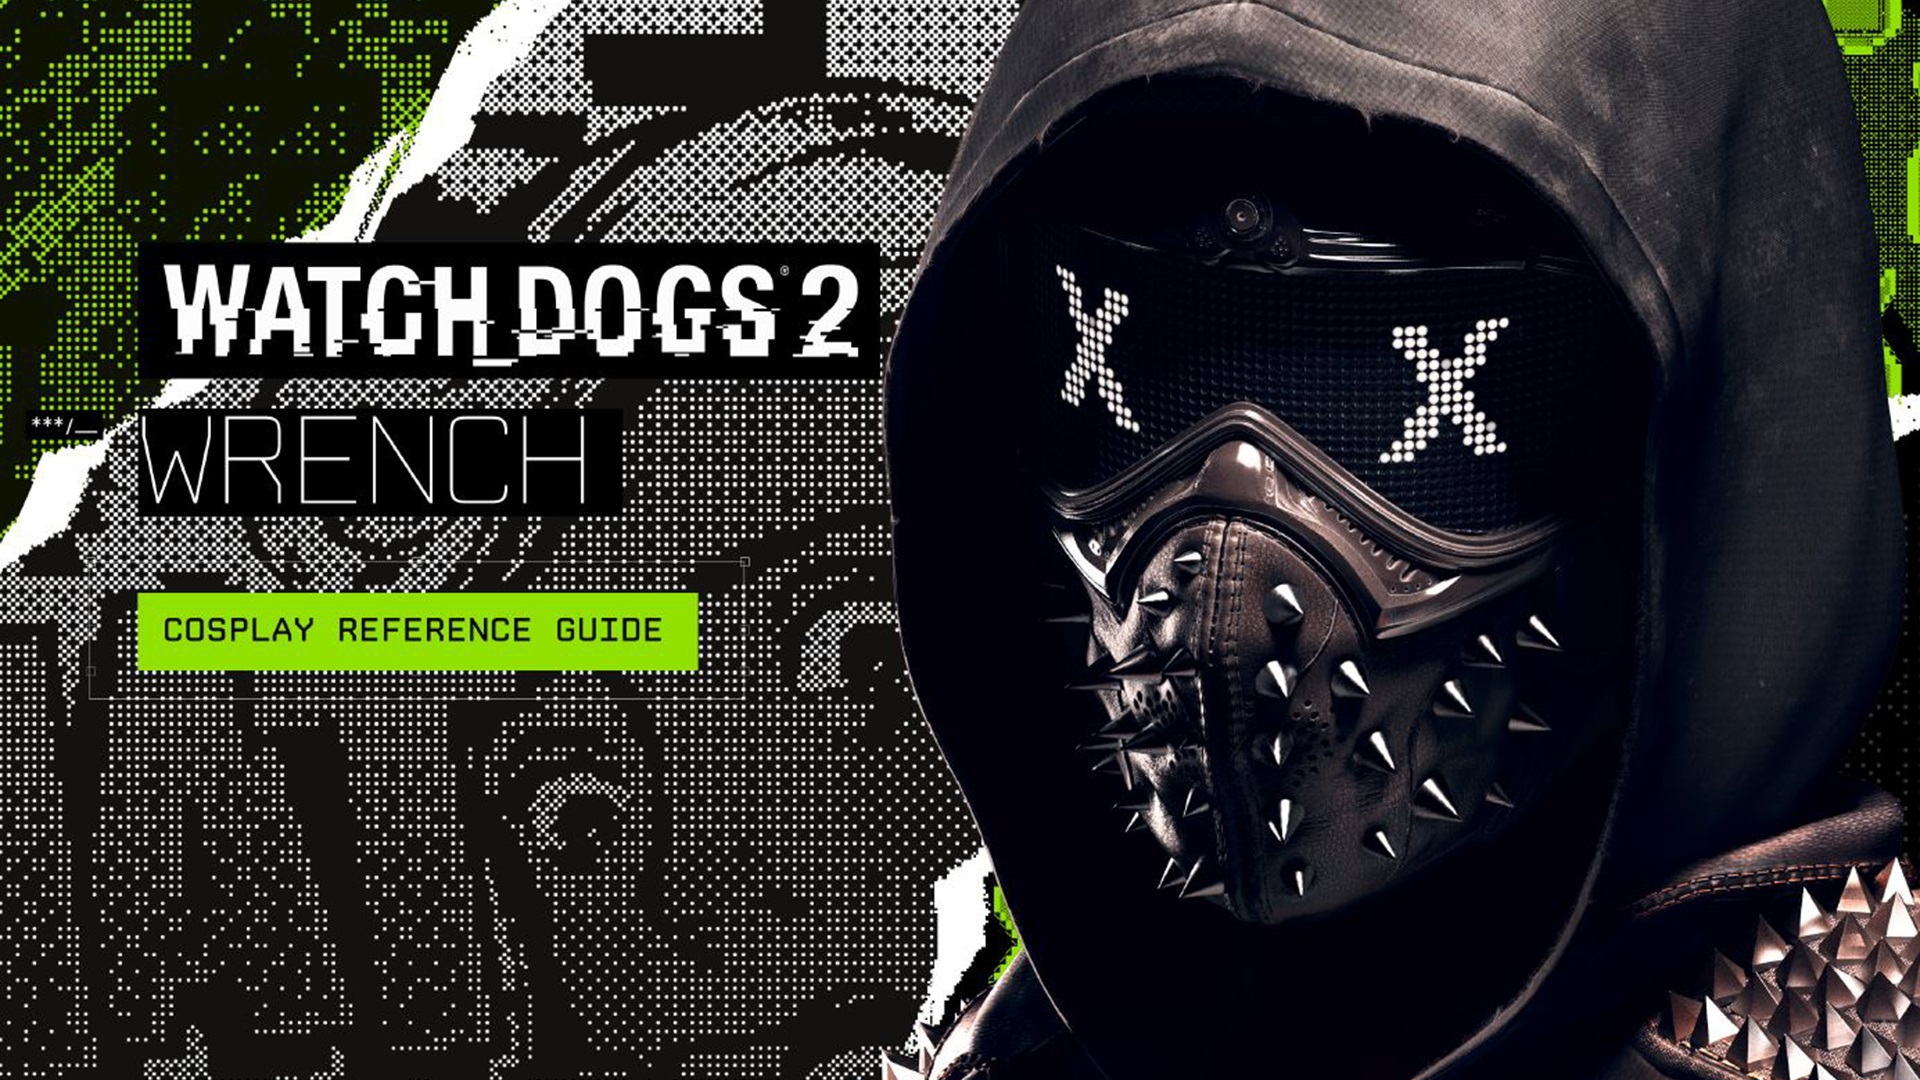 Pictures Of Watch Dogs 2: Watch Dogs 2 Wrench Cosplay Guide